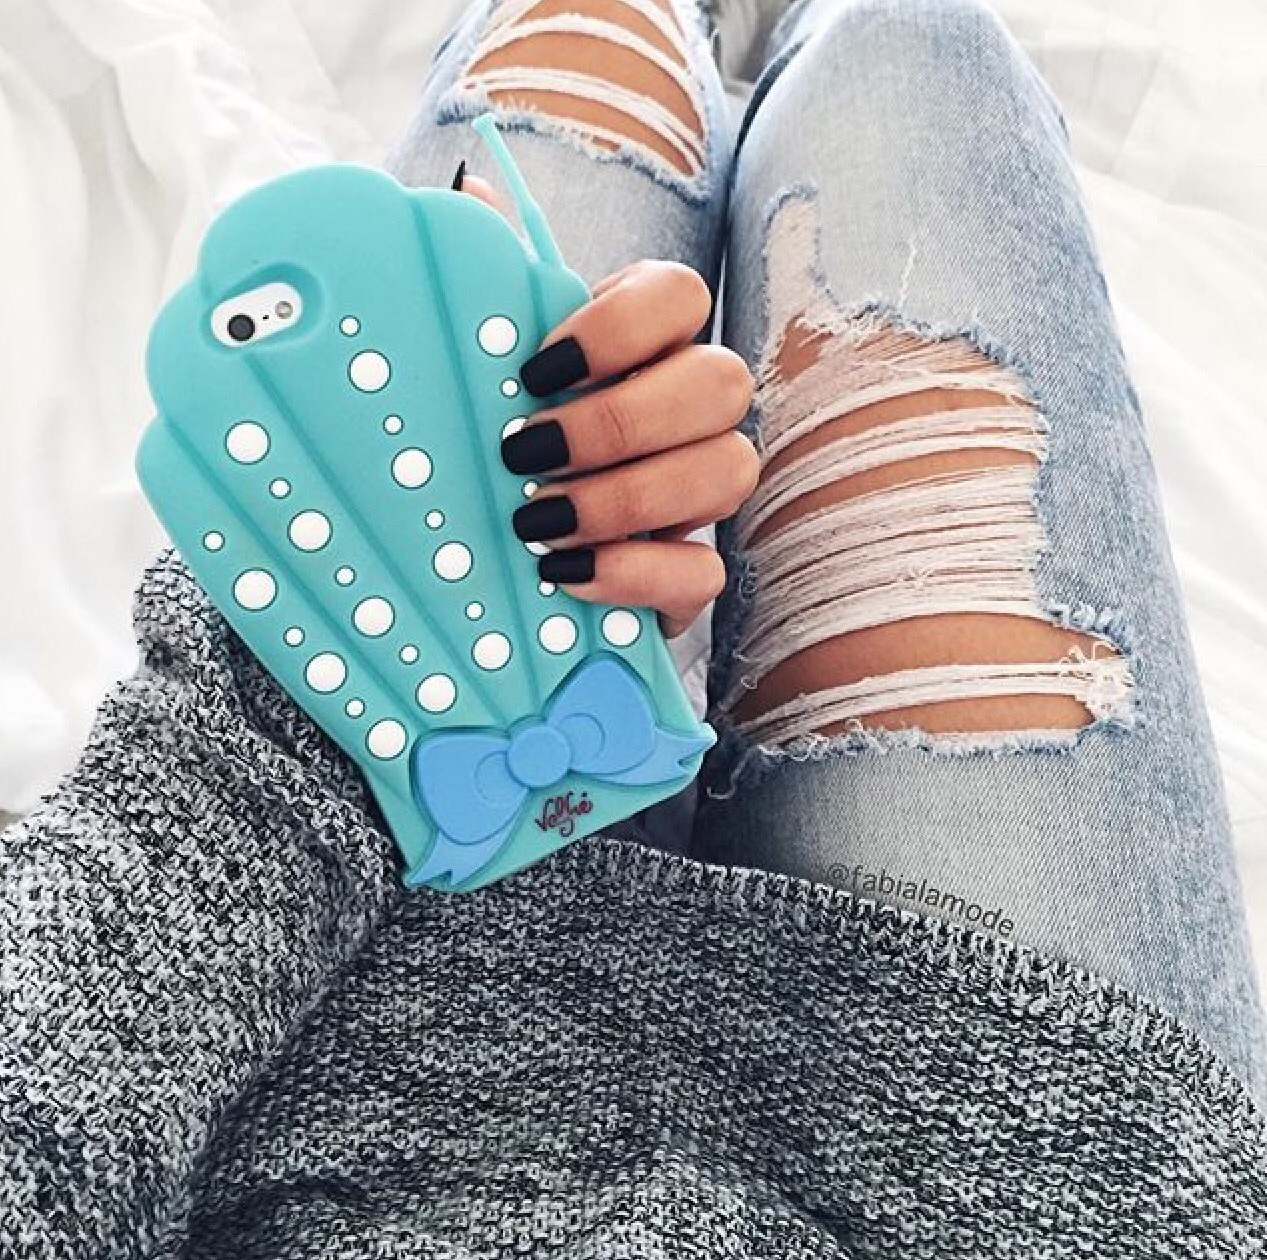 black, blue, case, cases, cute, denim, fashion, grey, indie, inspiration, inspo, iphone, jeans, mermaid, nails, outfit, phone, style, tech, valfre